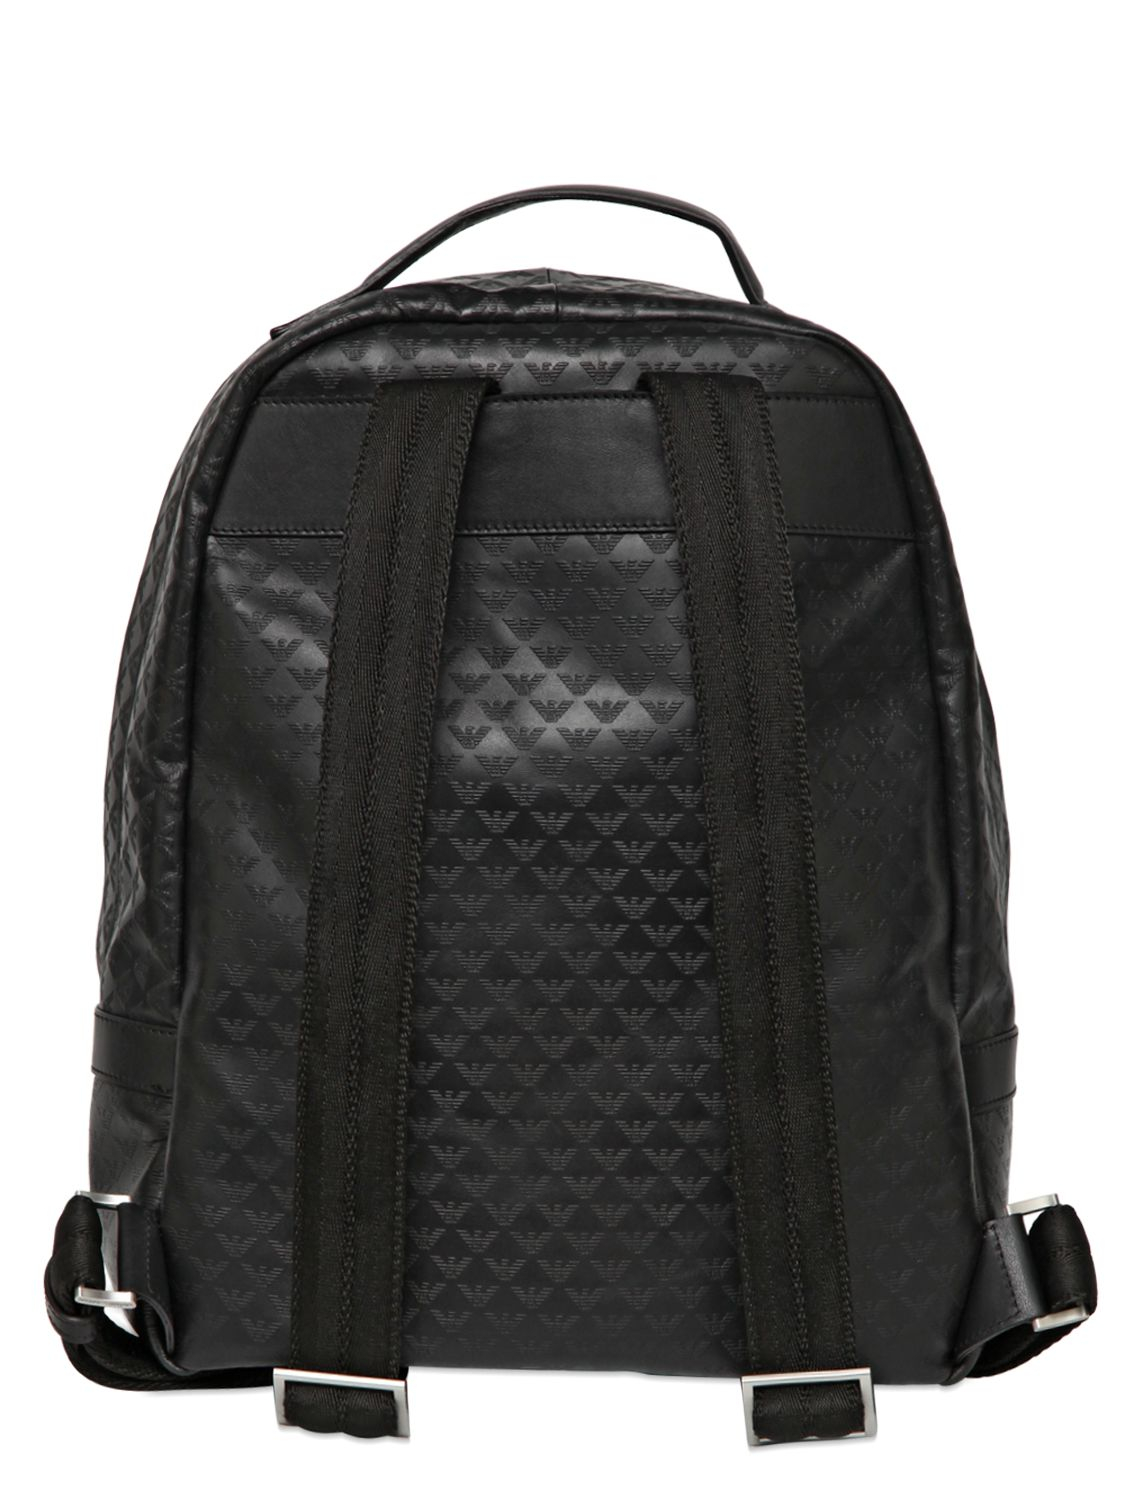 Lyst - Emporio Armani Printed Logo Leather Backpack in